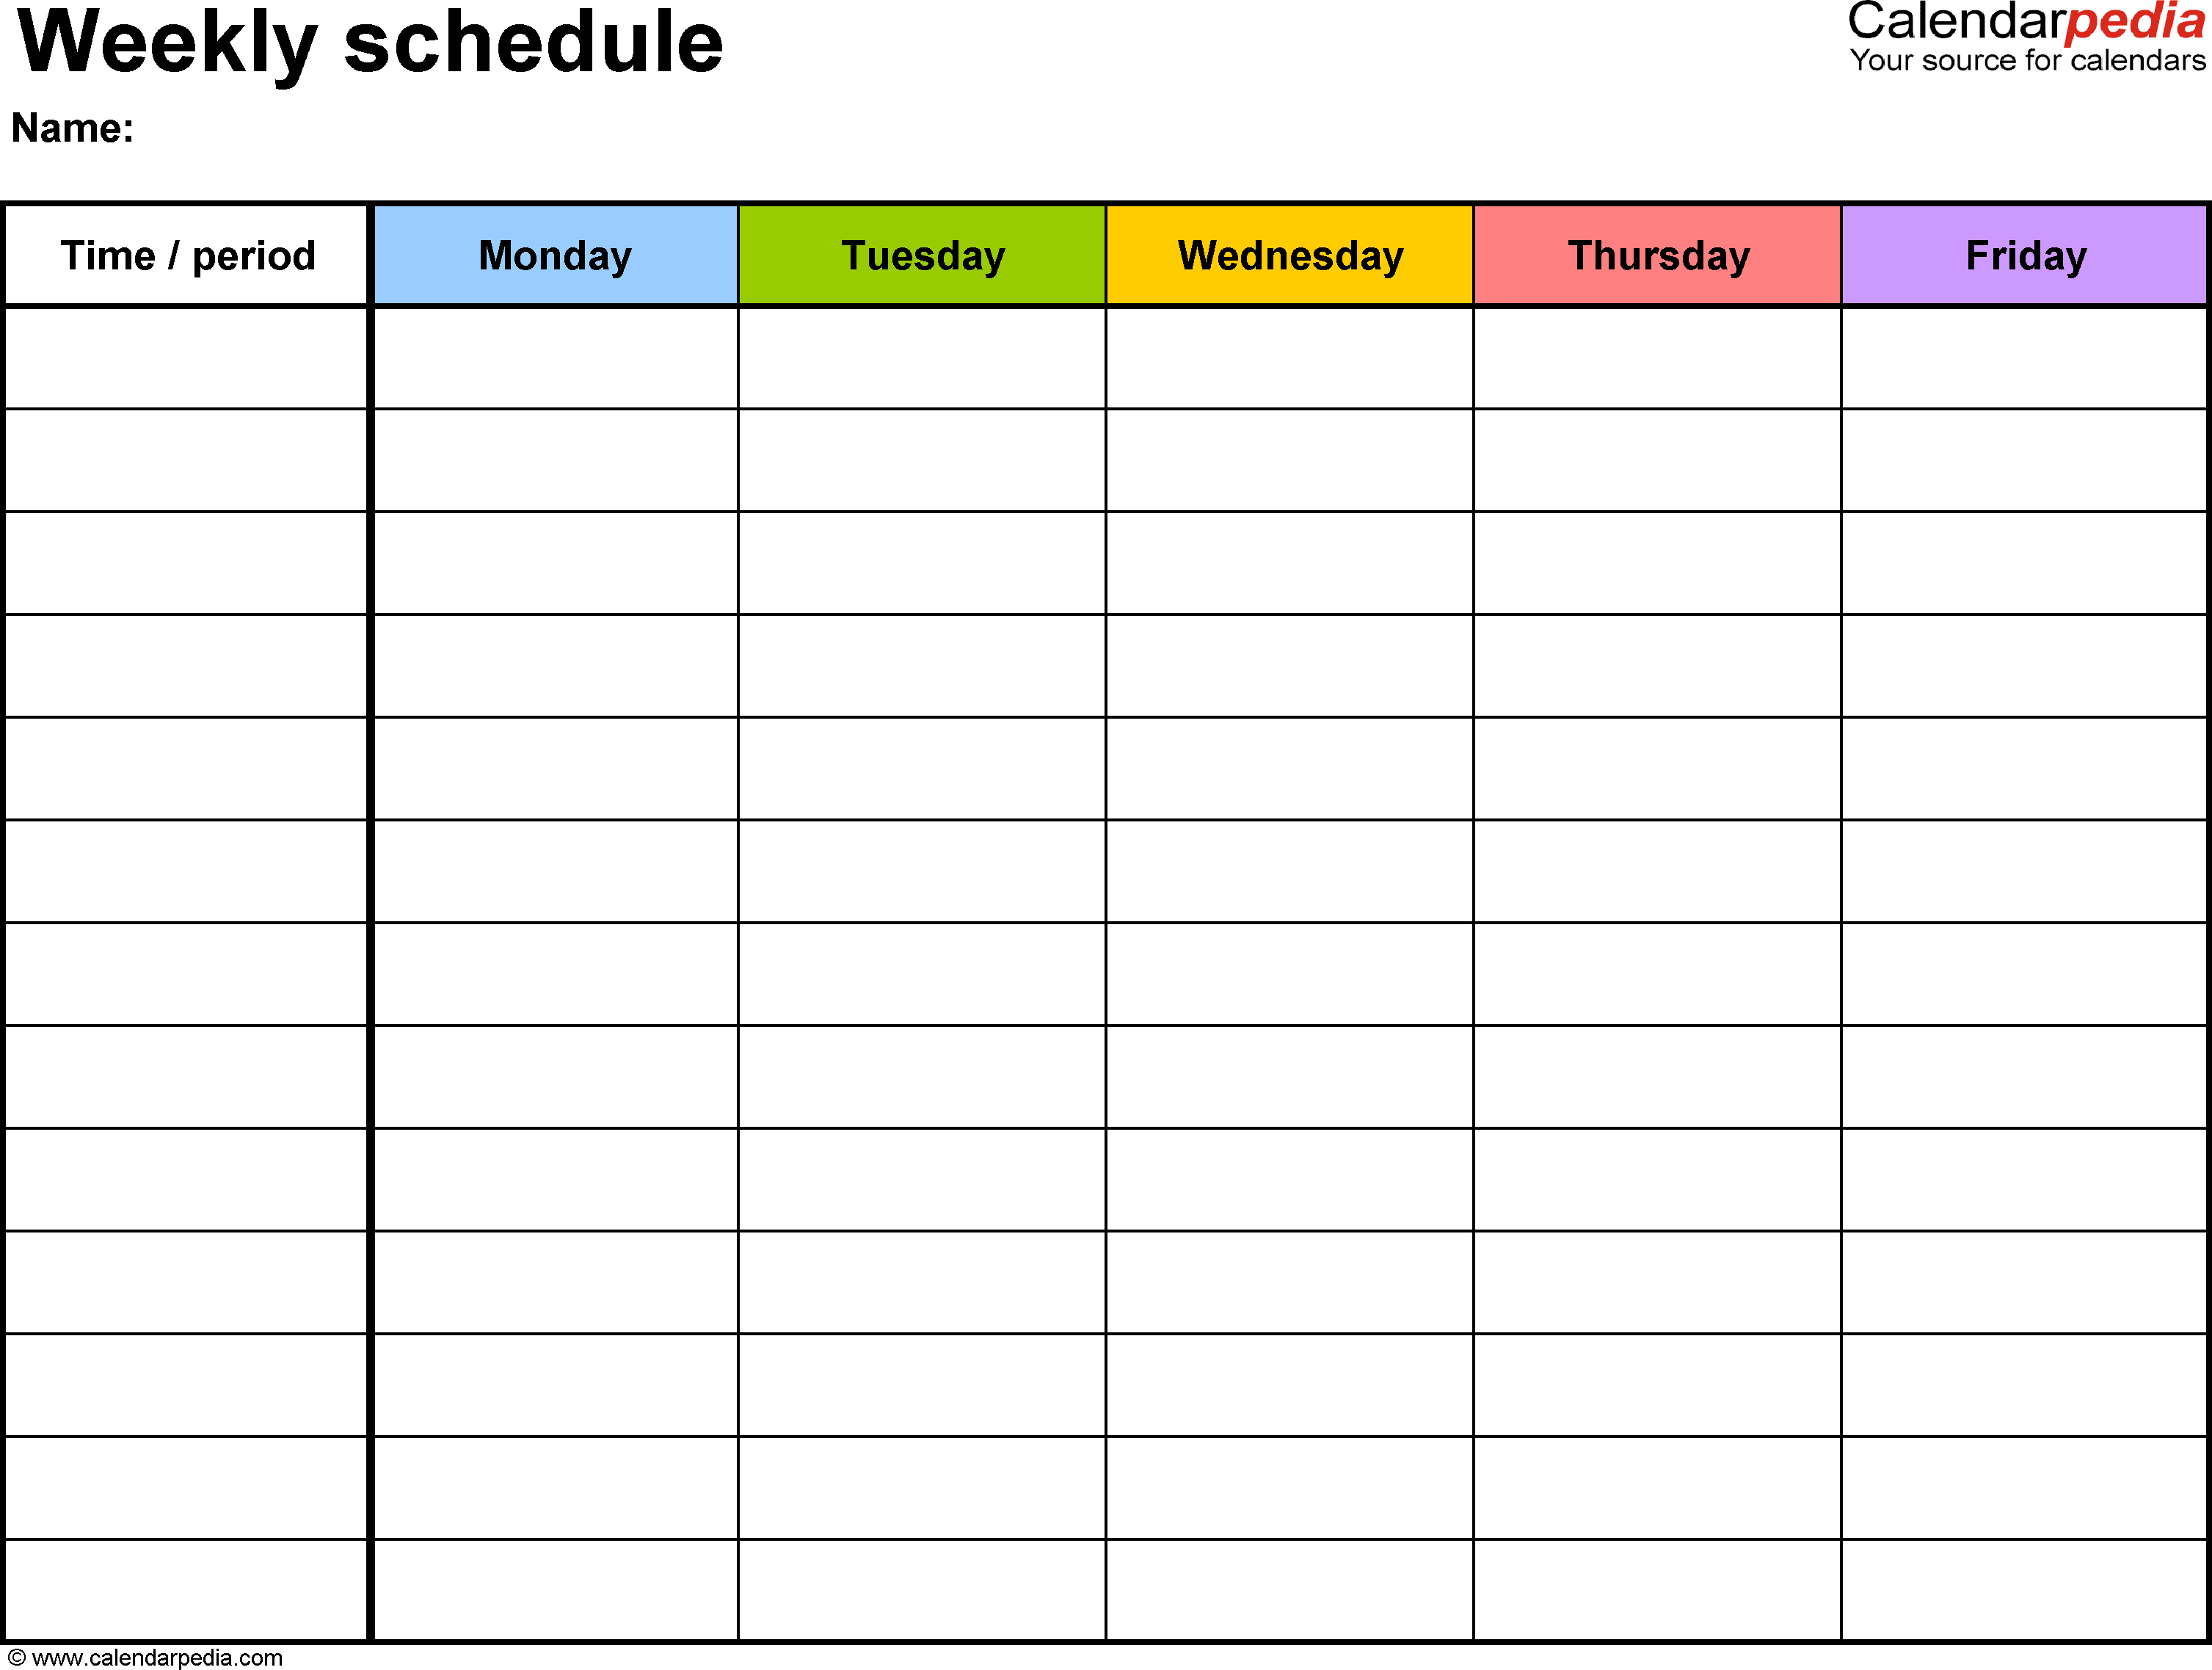 Free Weekly Schedule Templates For Excel - 18 Templates for Blank Calendar Template Excel